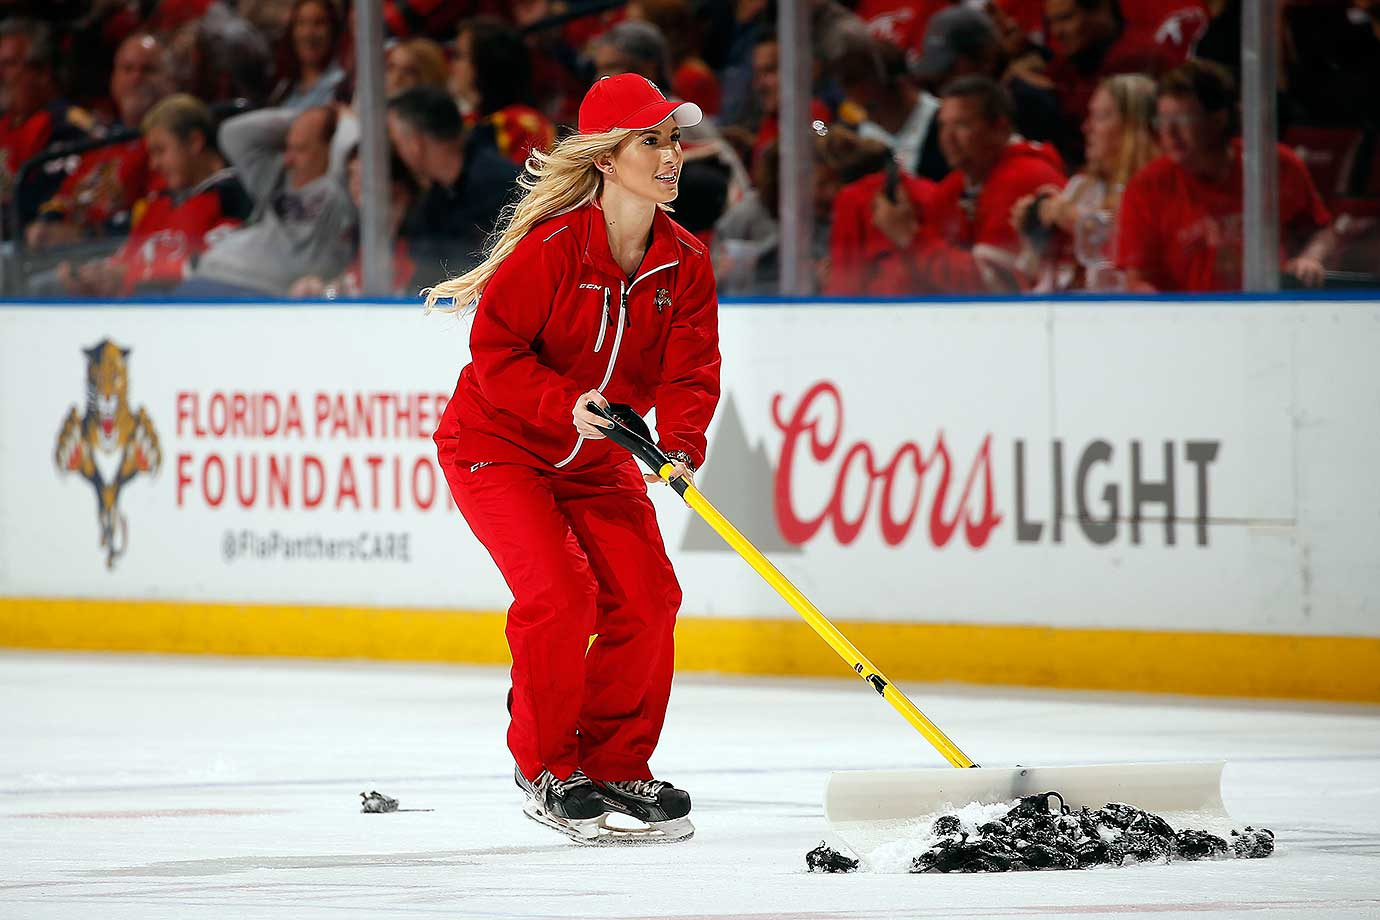 A Florida Panthers Ice Technician gathers up rats that were thrown after the team scored a goal against the New Jersey Devils.